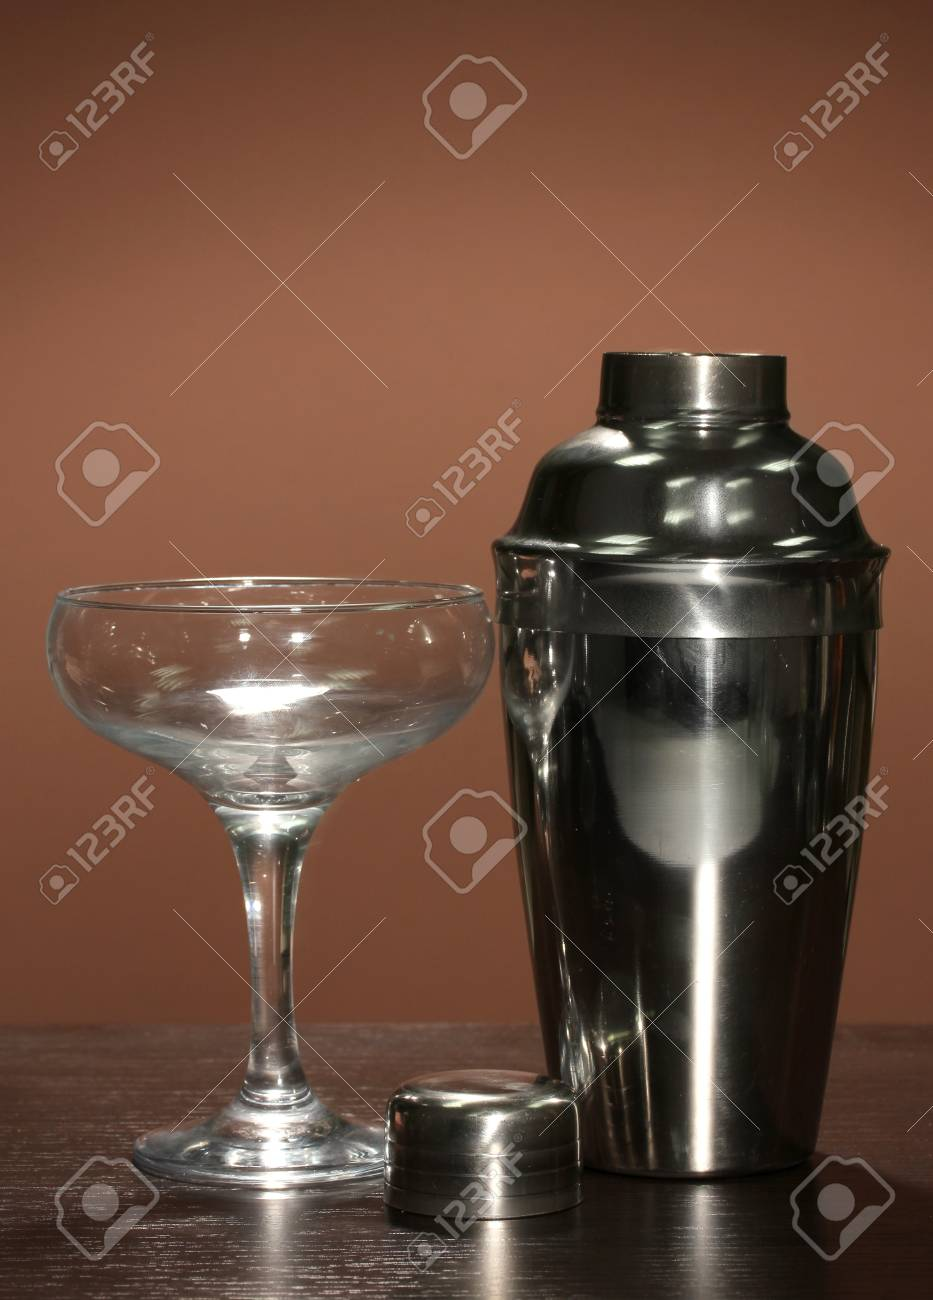 Cocktail shaker and cocktail glass on color background Stock Photo - 16738412